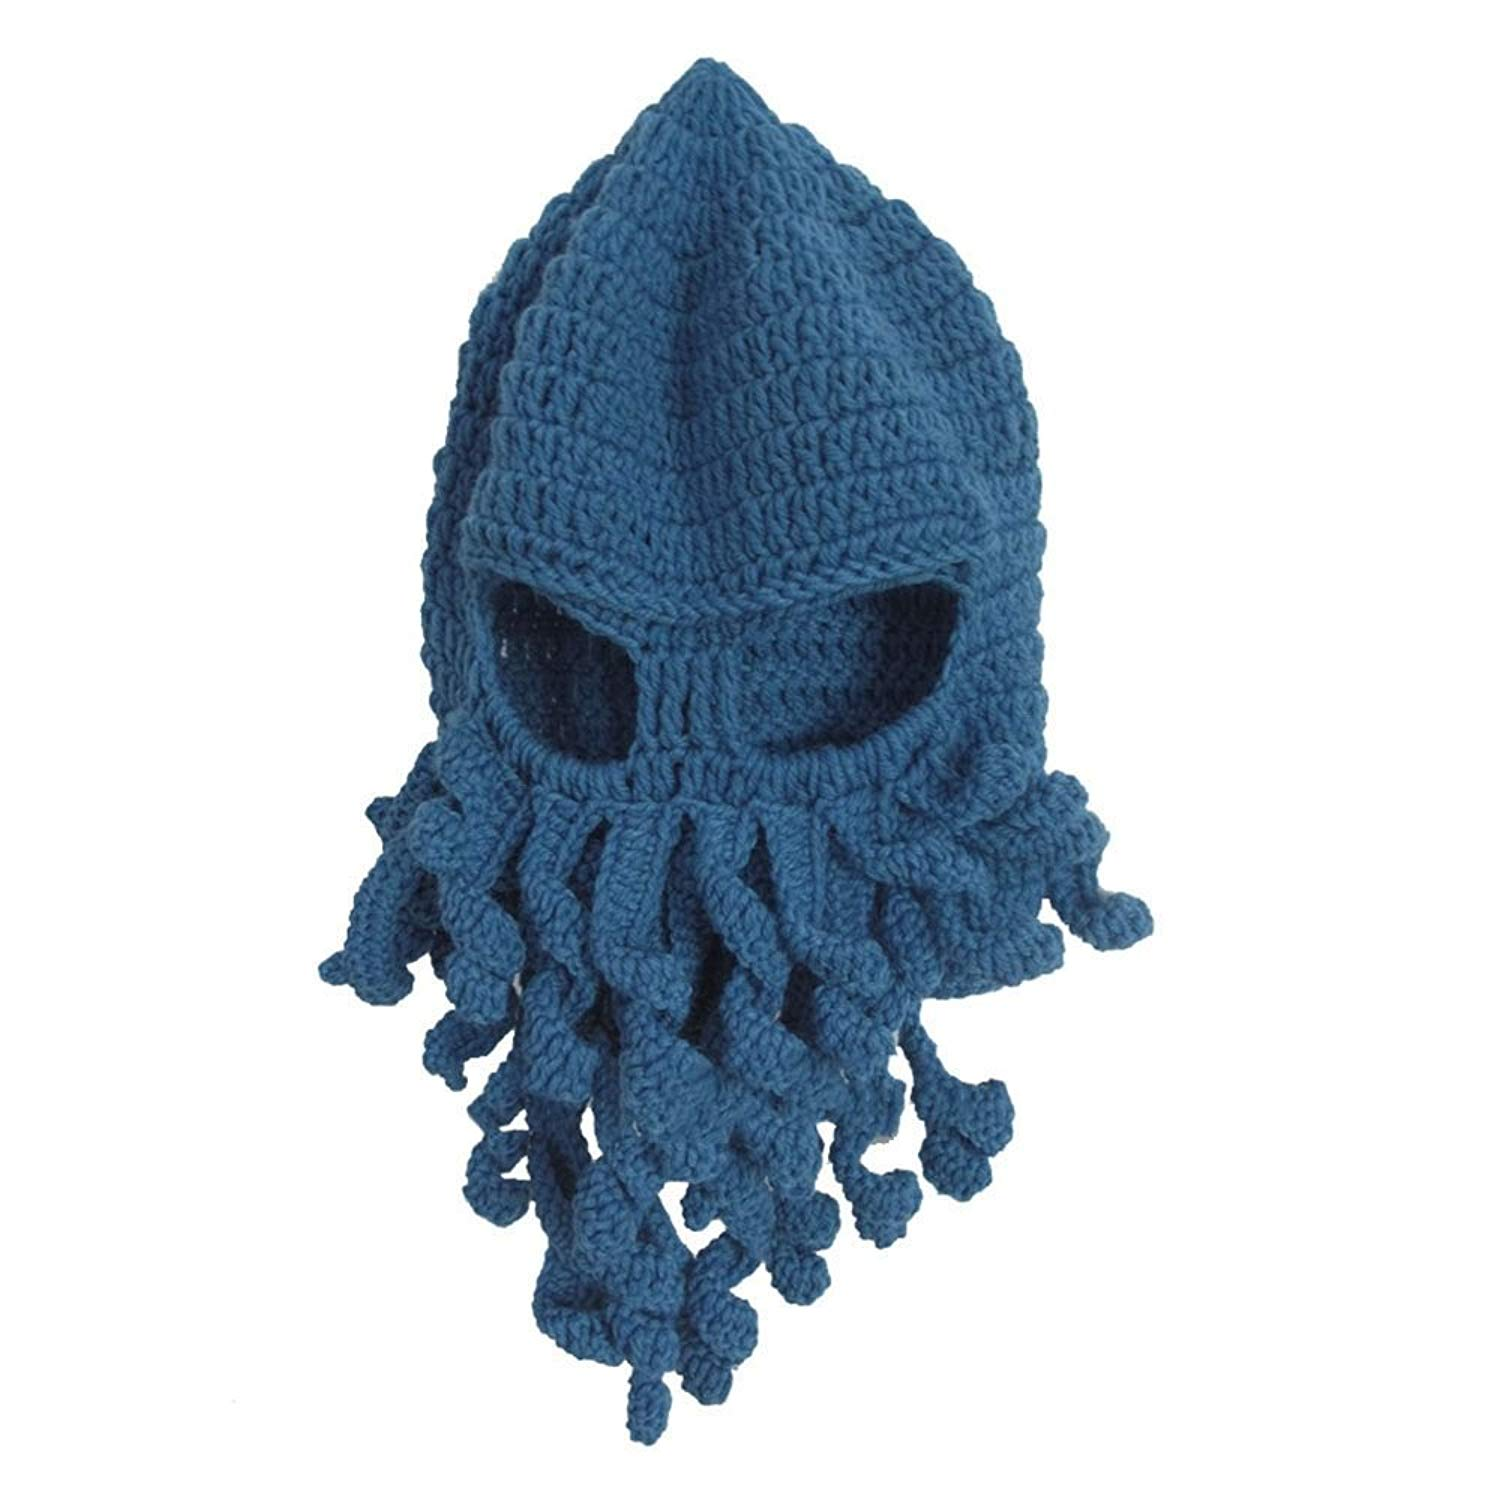 Hot Sale Creative Funny Unisex Tentacle Octopus Knit Beanie Hats Wind Ski Mask Cosplay Caps 2016 Men's Hats